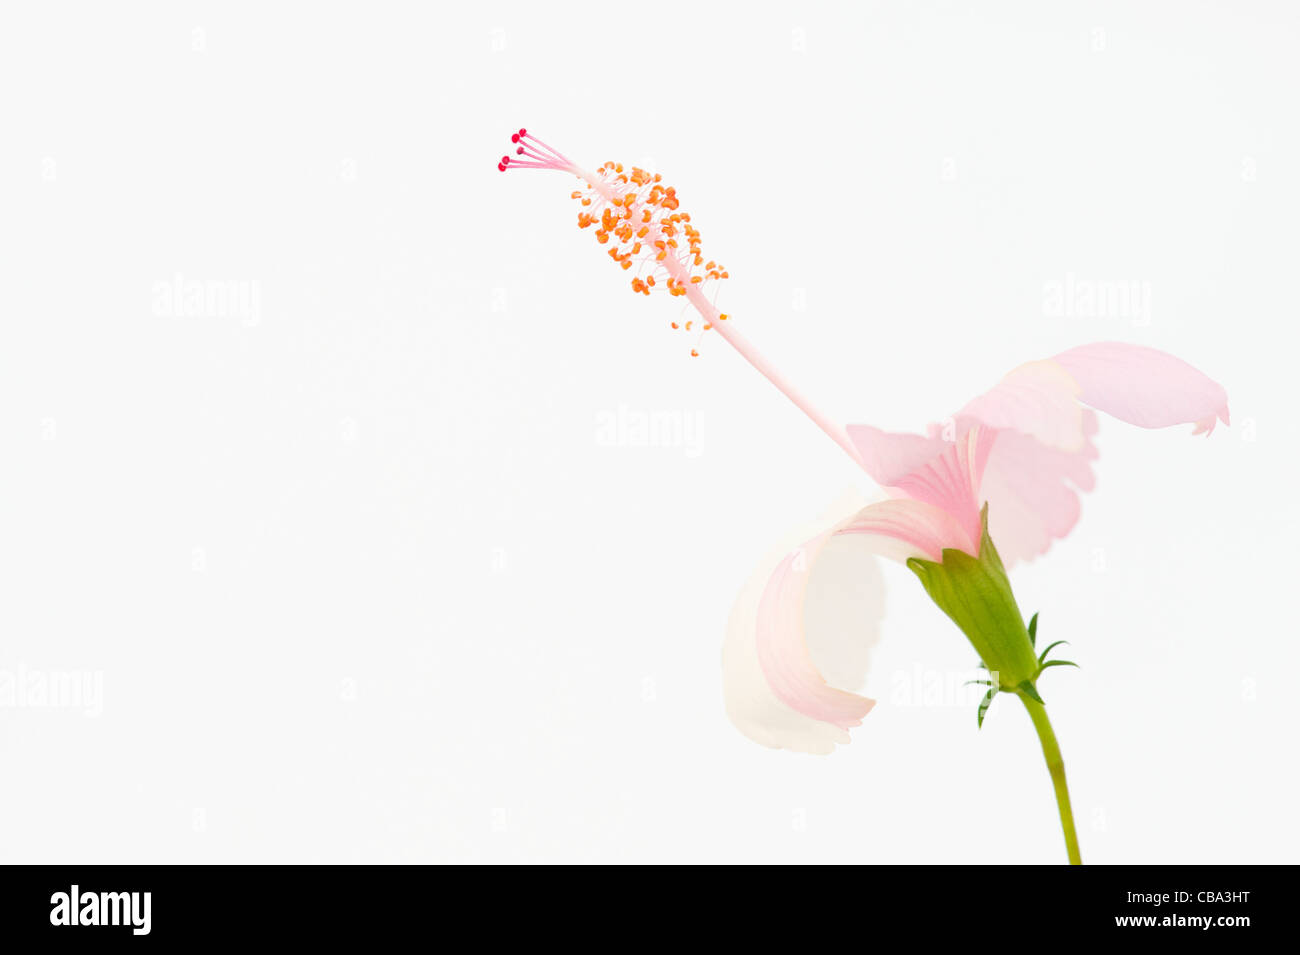 Hibiscus flower on white background - Stock Image